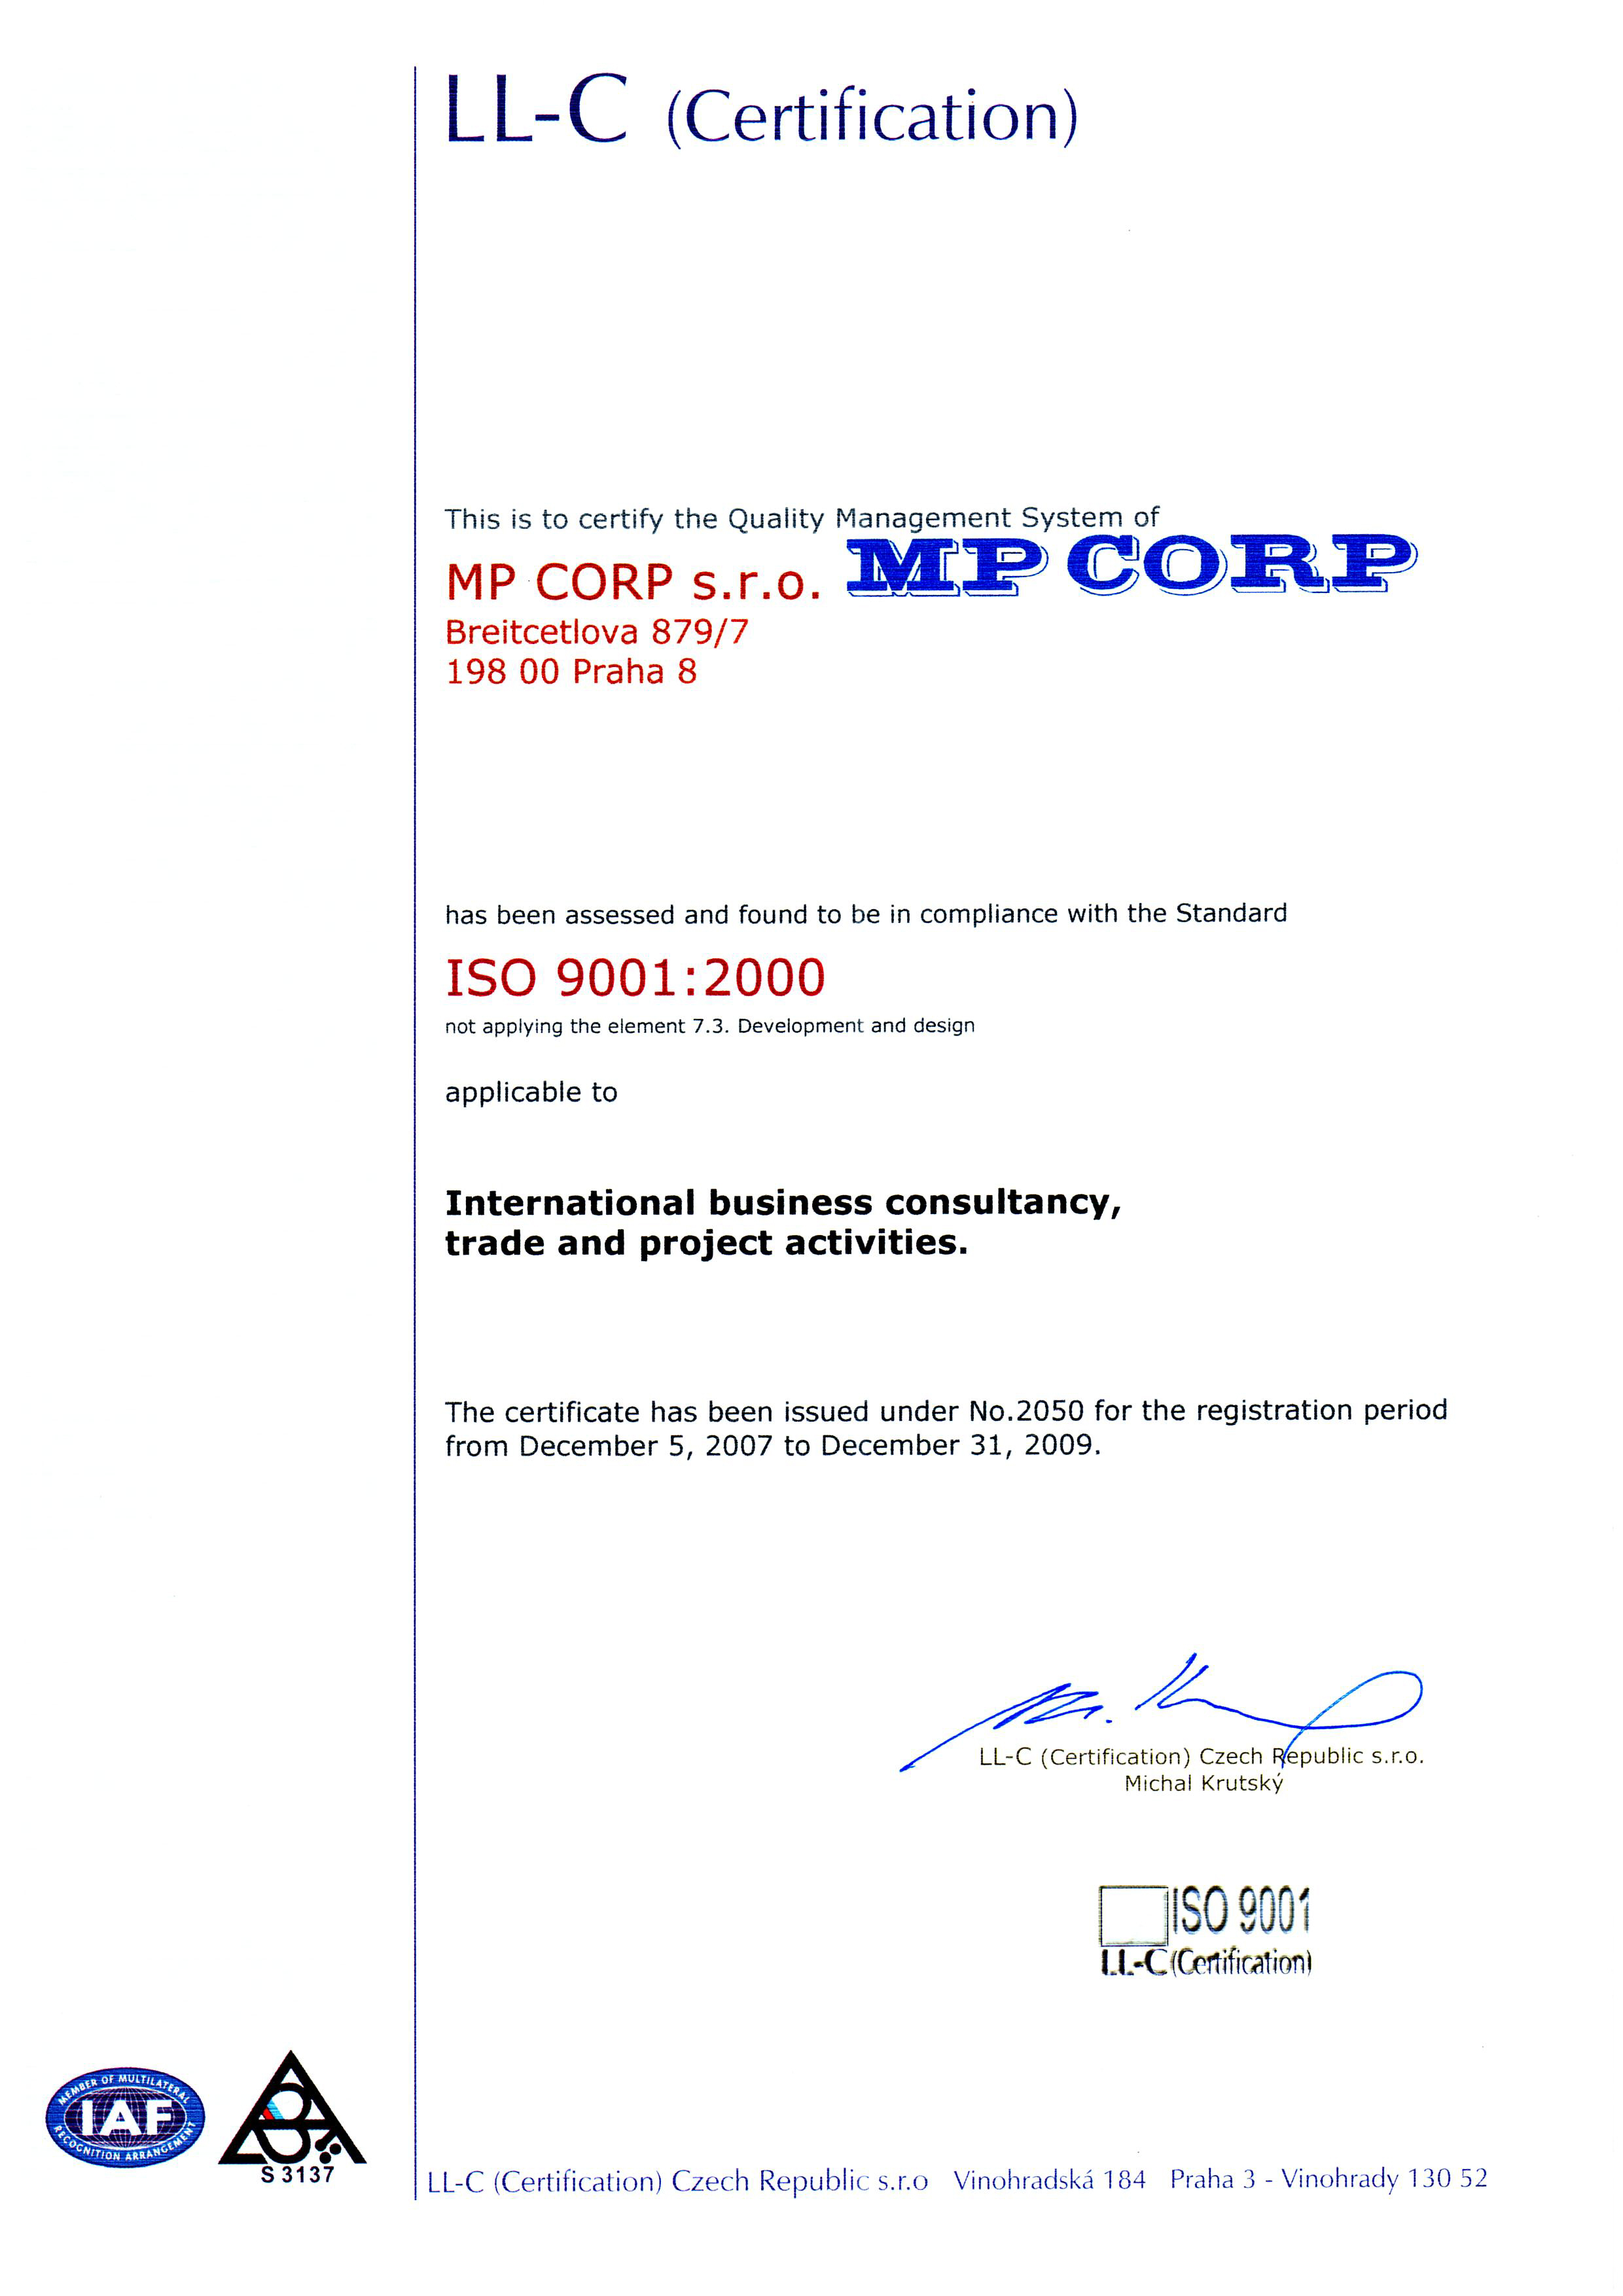 Quality certification mp corp sro implements qms quality management system in compliance with iso 90012000 and is registered by ll c certification iaf international xflitez Image collections